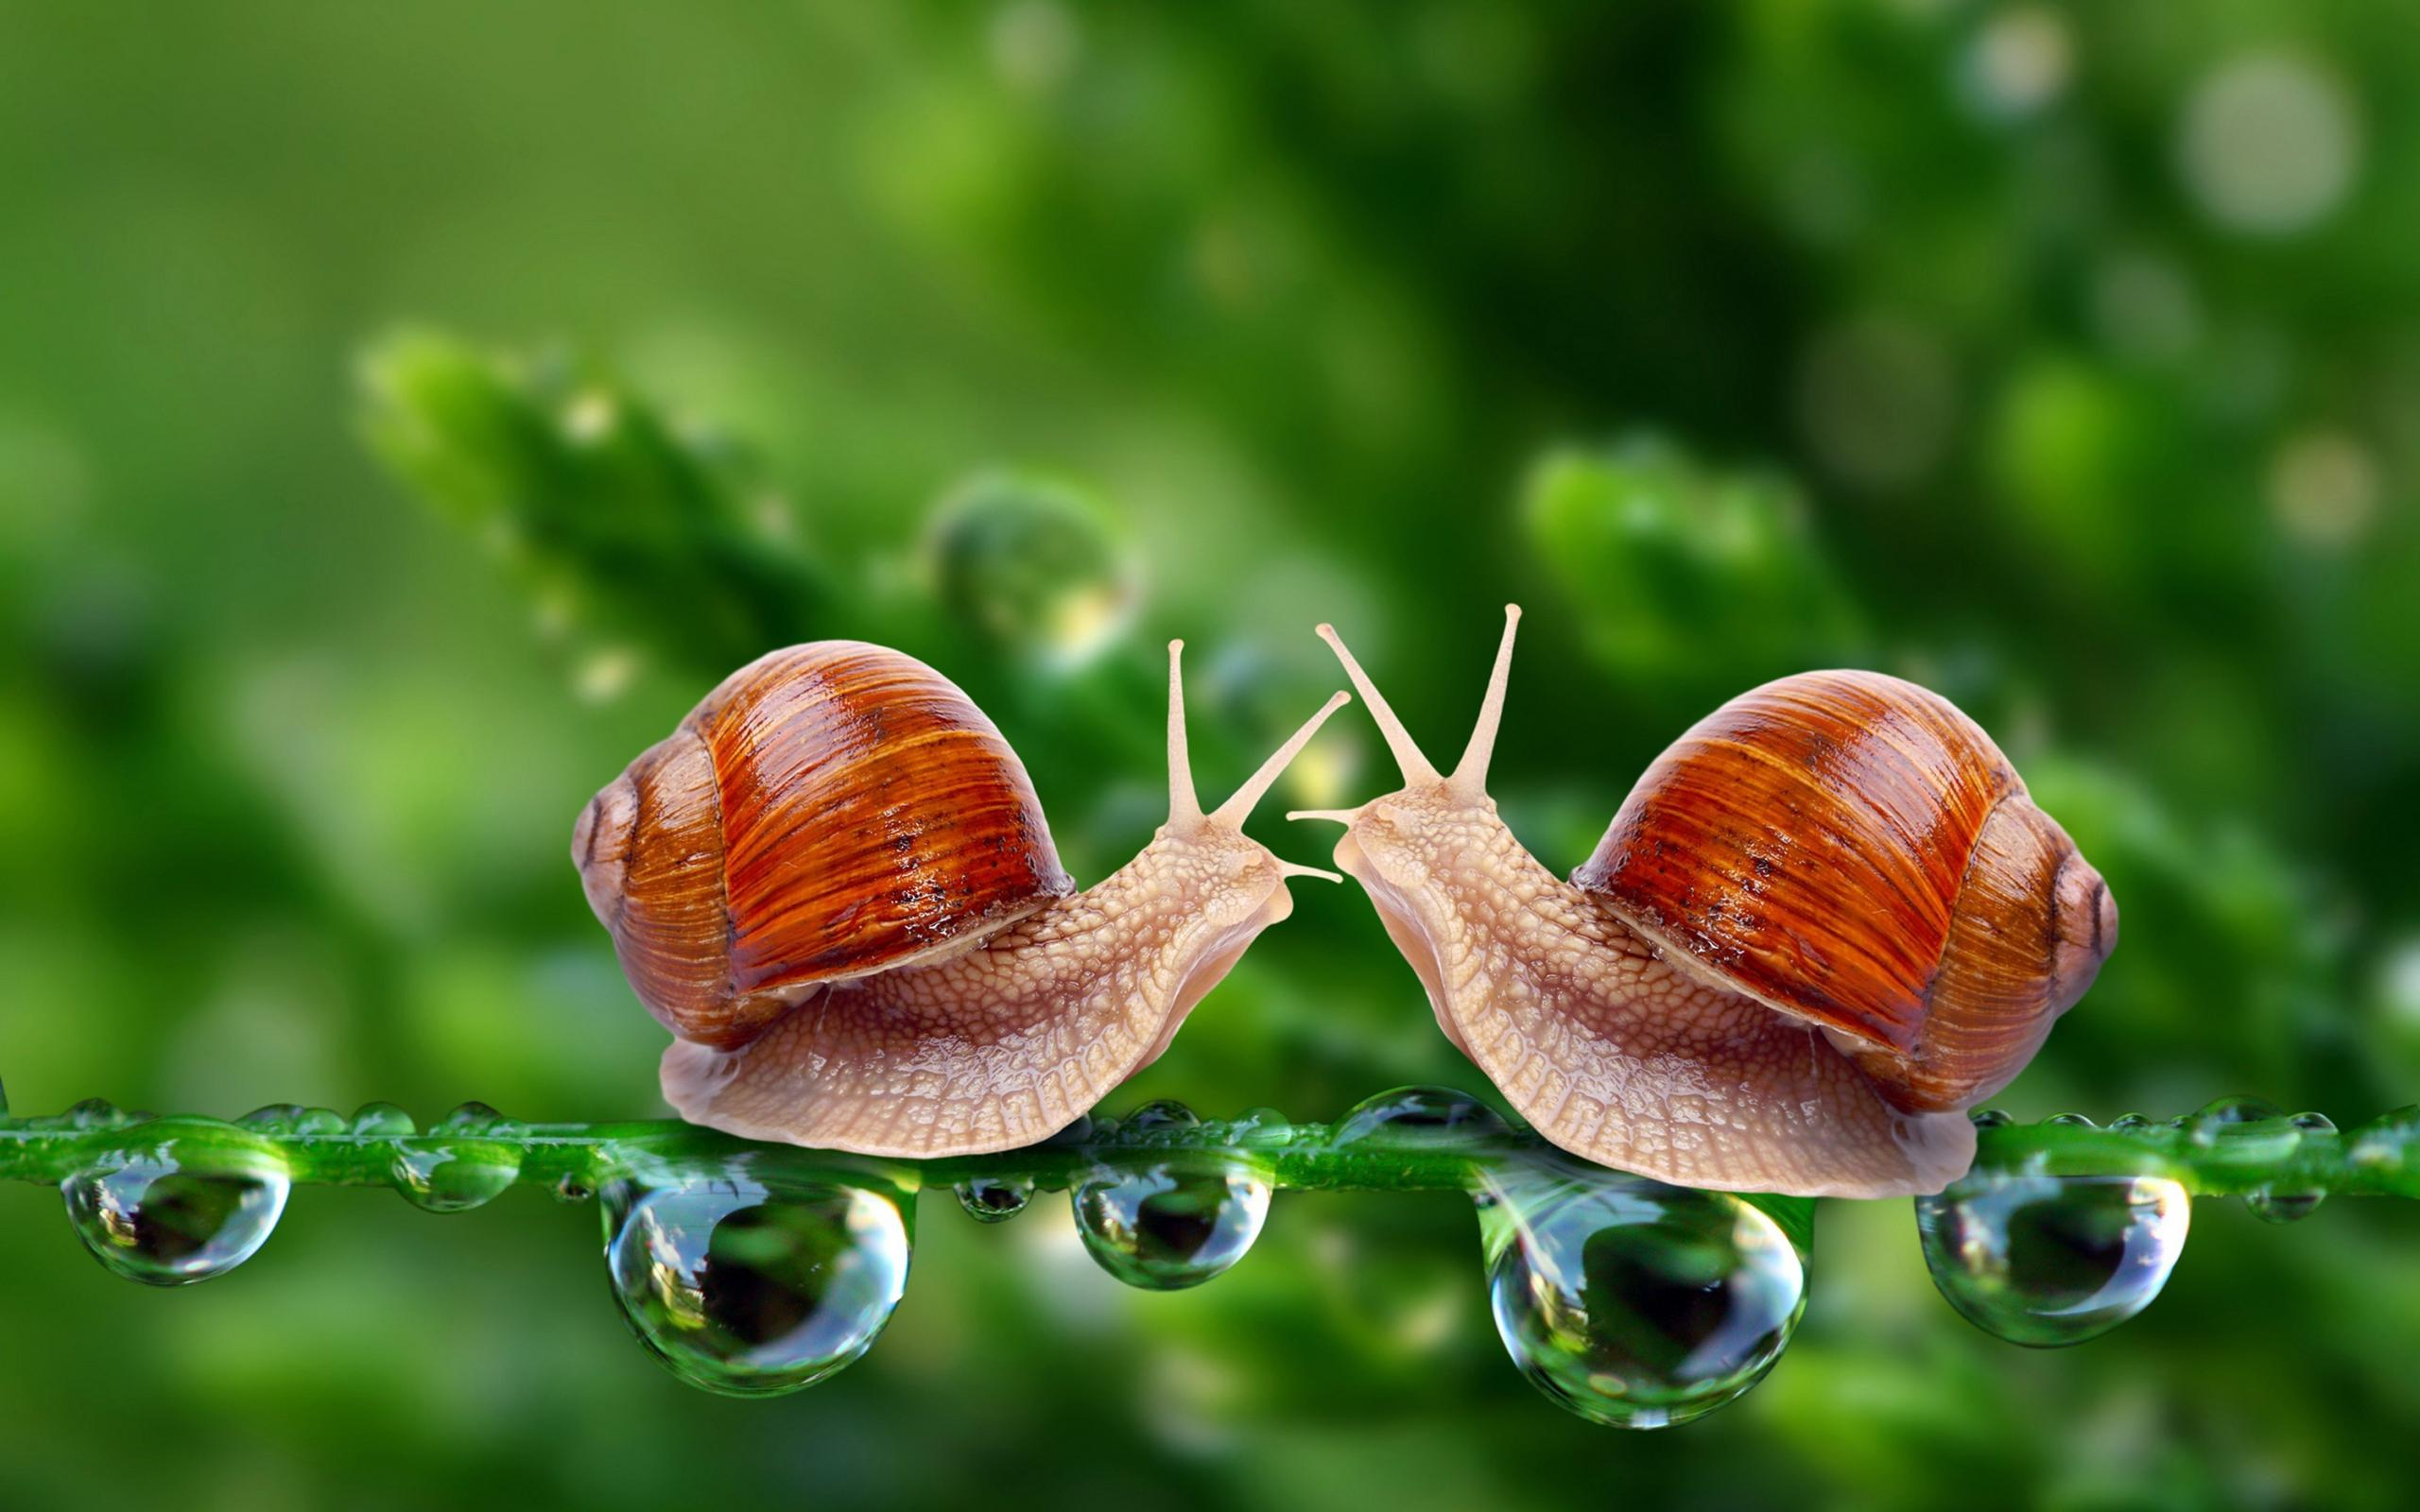 Snail Wallpaper HD